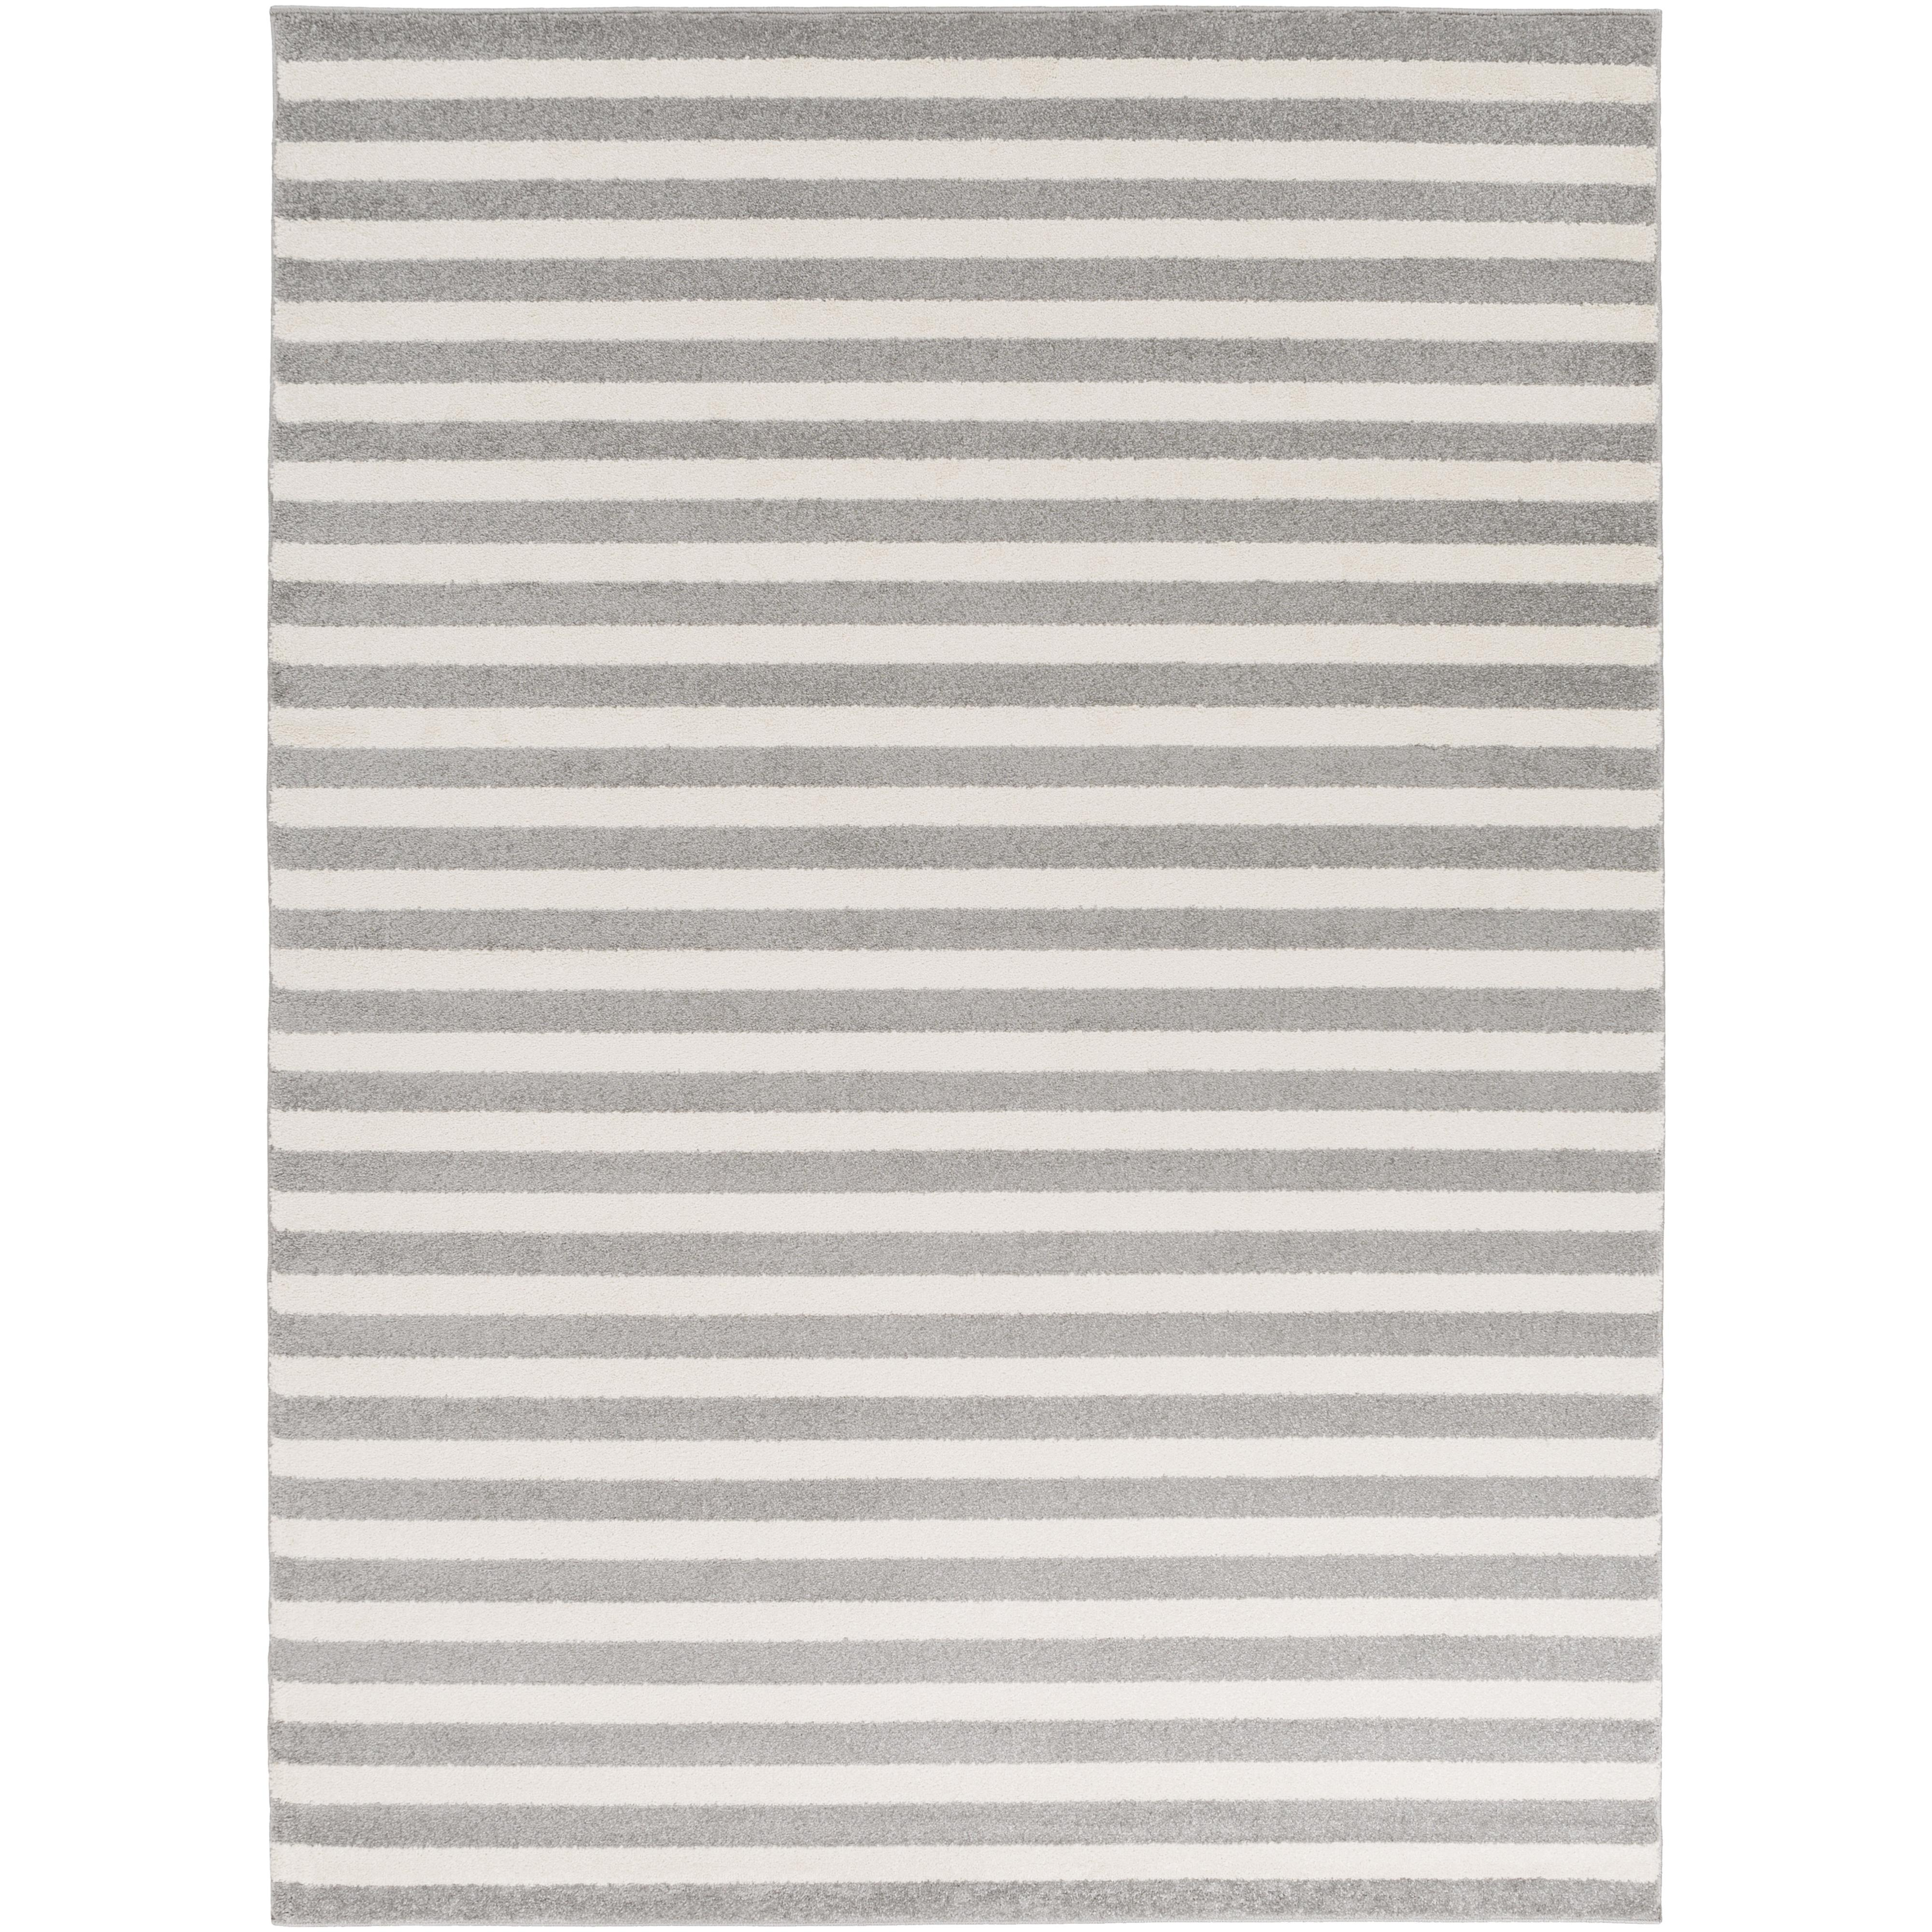 "Surya Rugs Horizon 5'3"" x 7'3"" - Item Number: HRZ1004-5373"